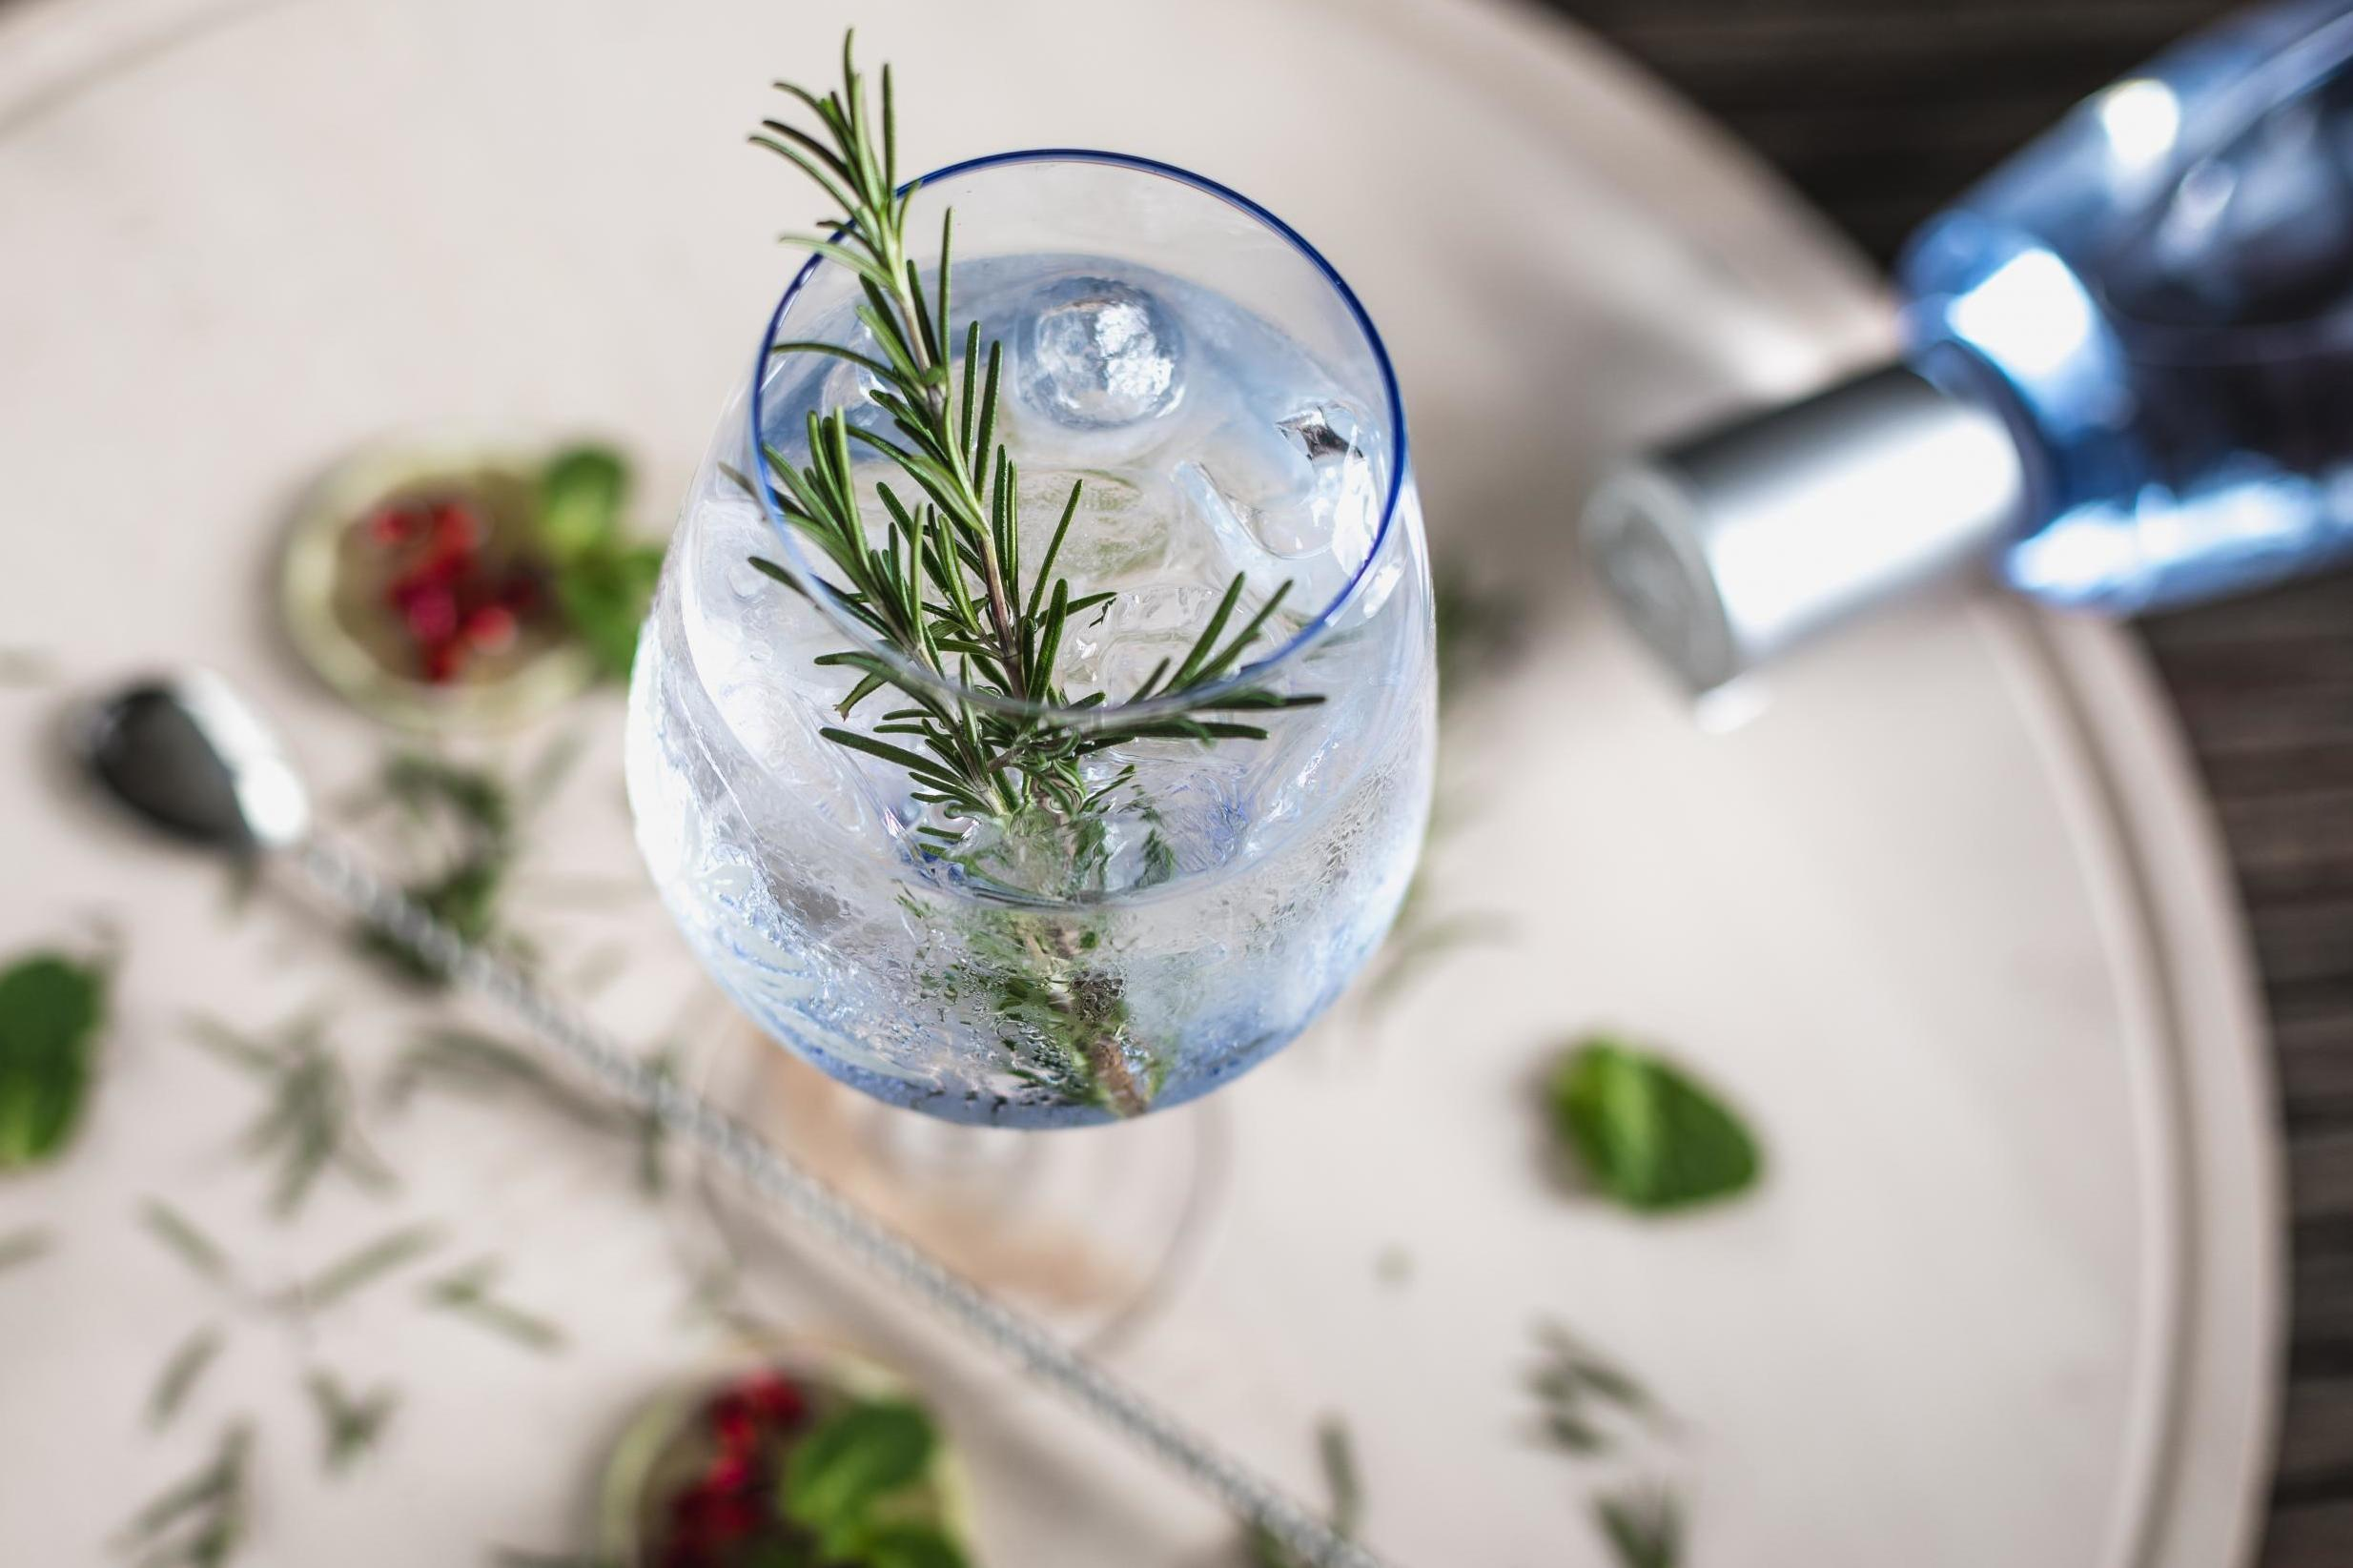 Gin sales hit record high as consumers bought the equivalent of a bottle for every adult in the UK